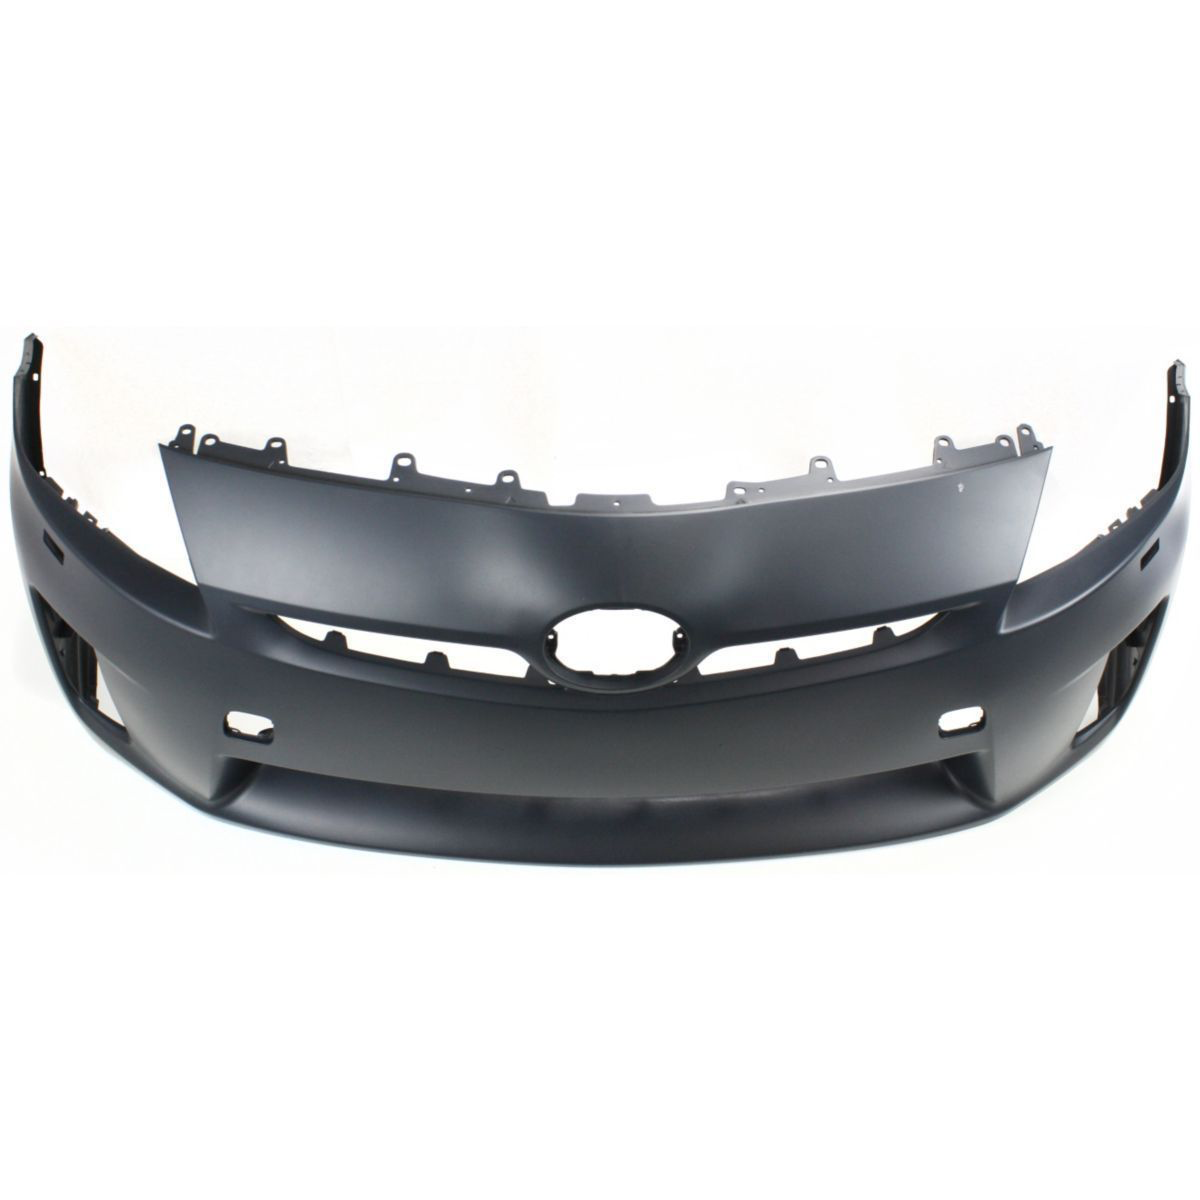 2010-2011 TOYOTA PRIUS Front Bumper Cover LED H/Lamps  w/o Pre-Collision System Painted to Match